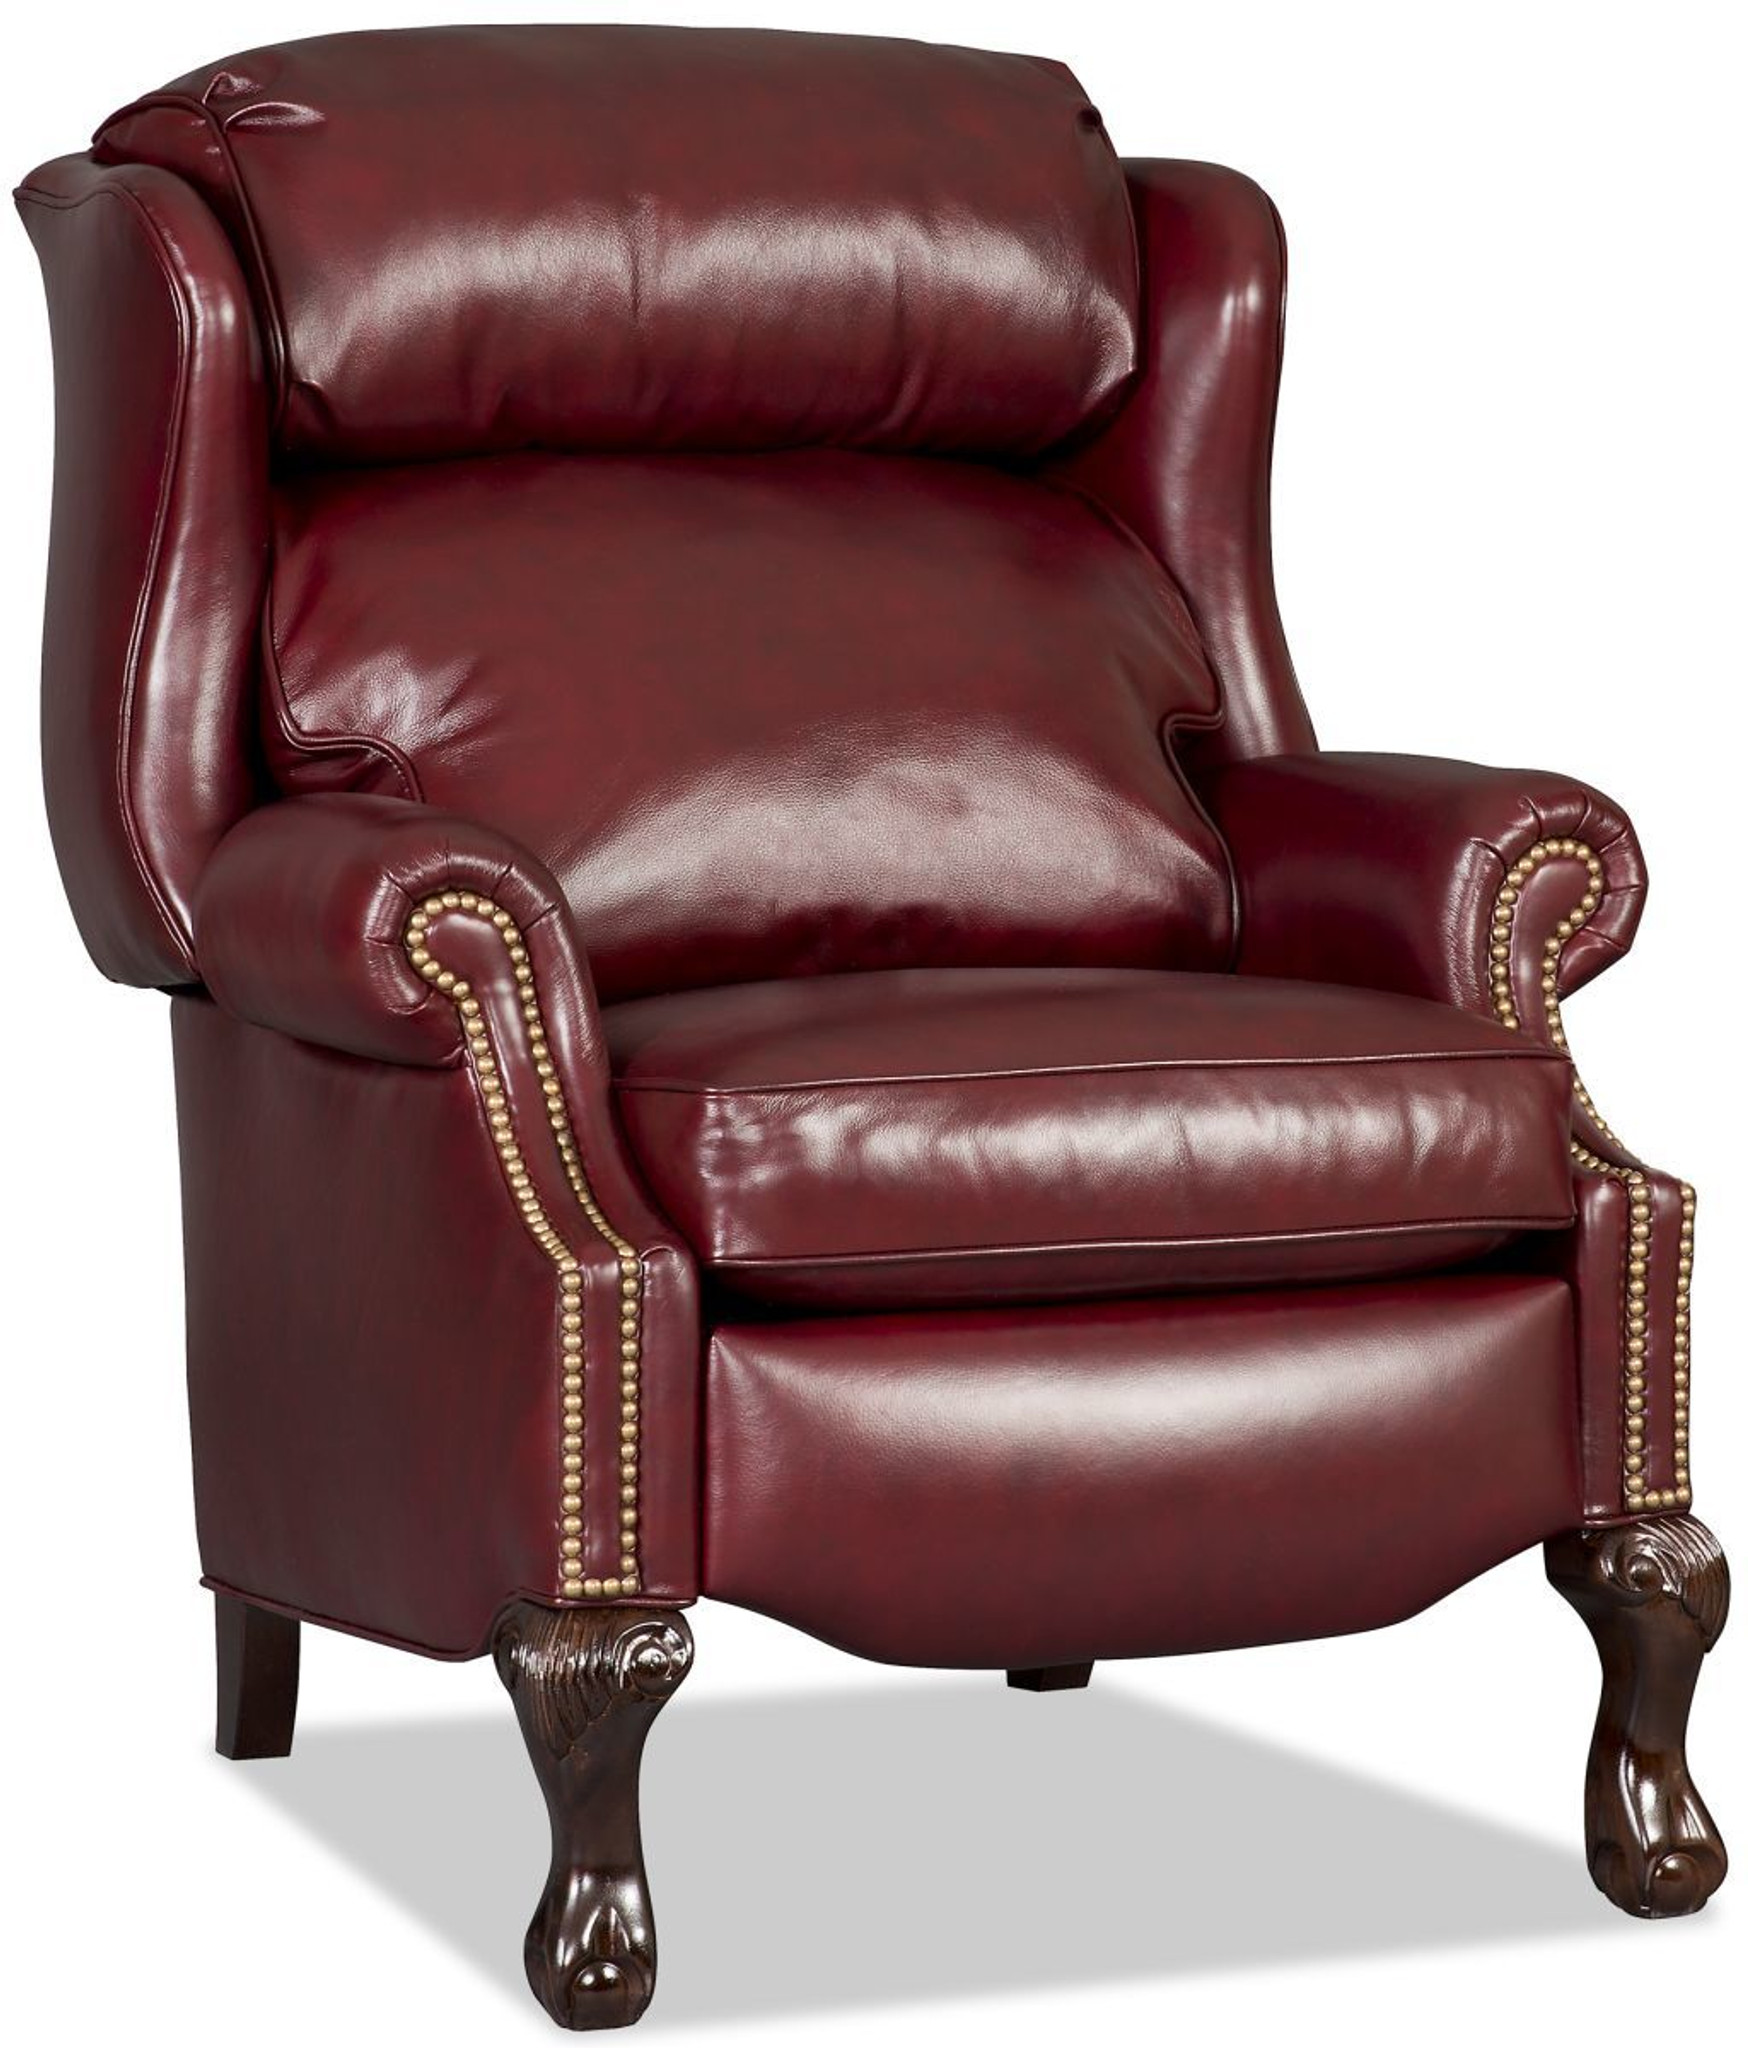 Bradington Young 4115 Ball Claw Recliner Special ...